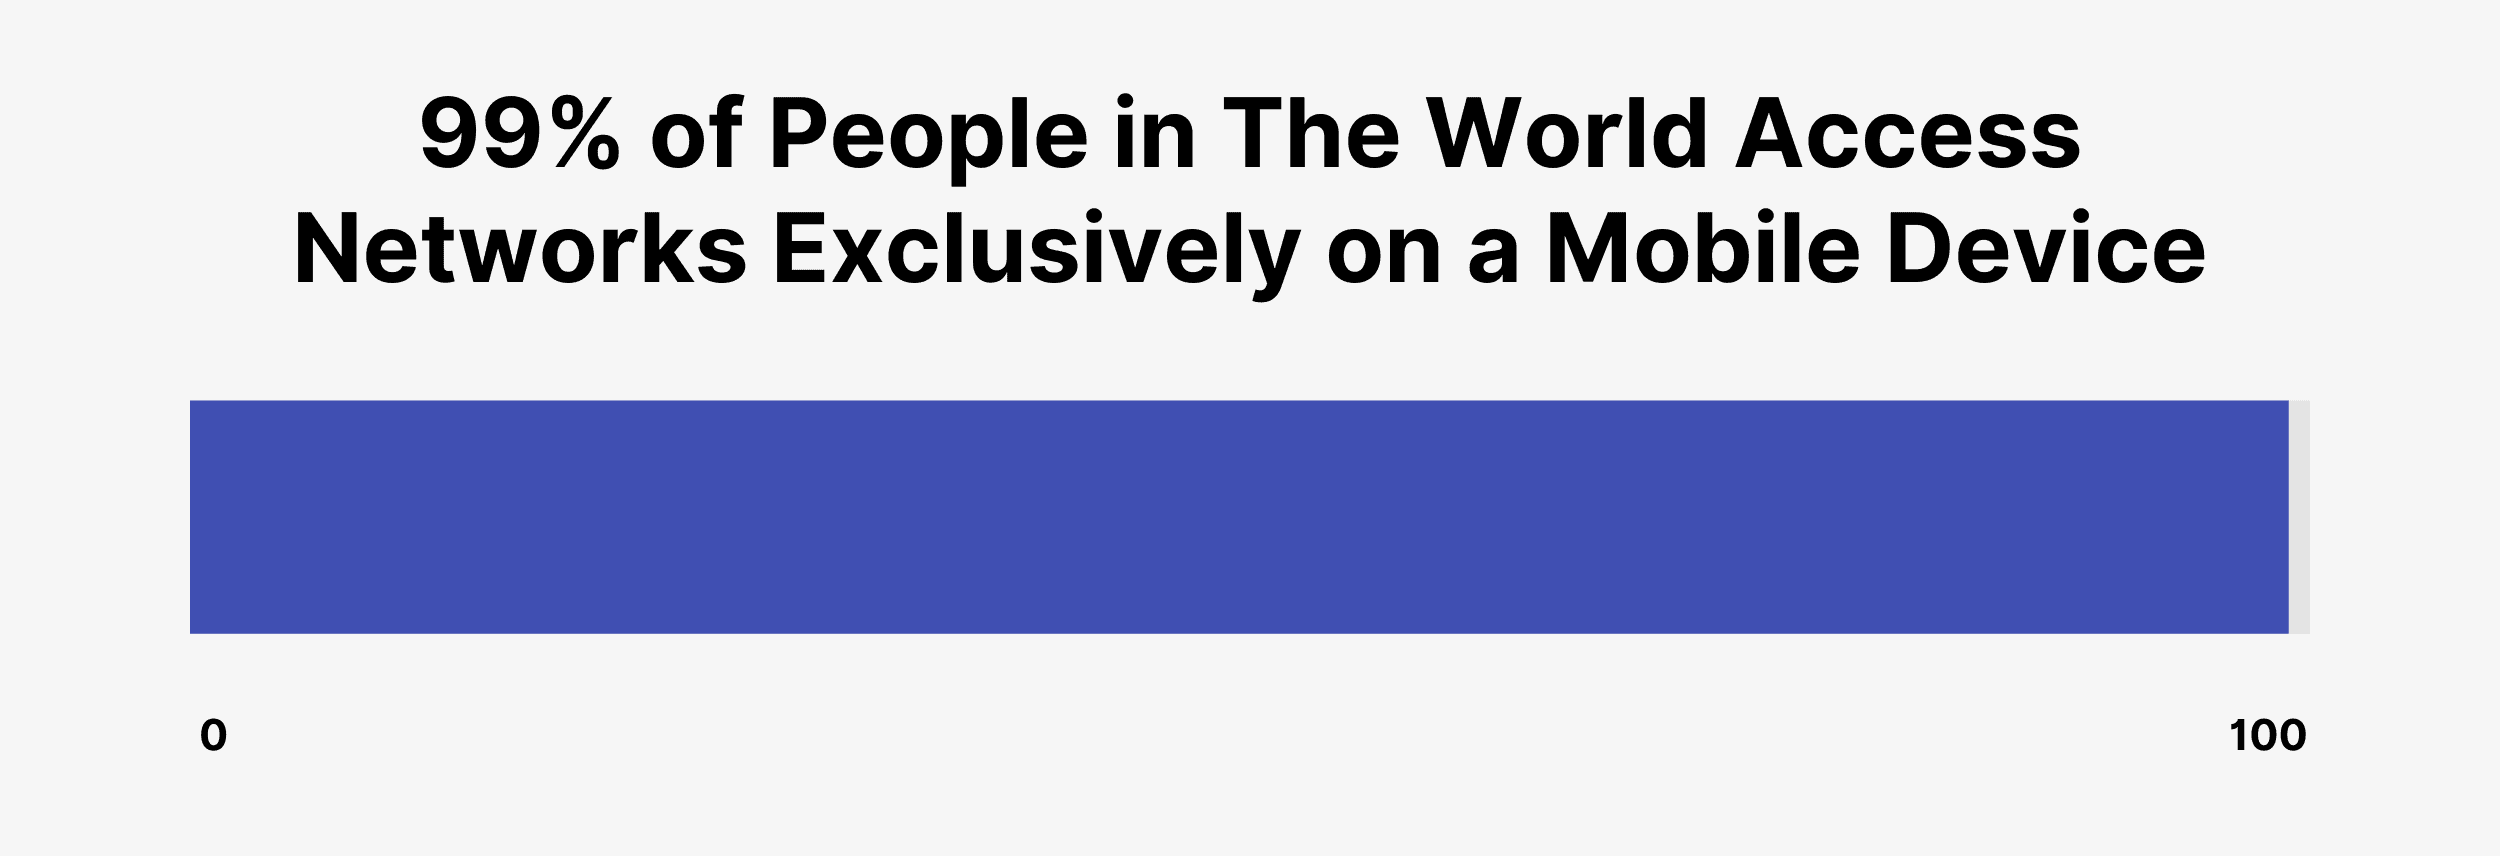 99% of people in the world access networks exclusively on a mobile device